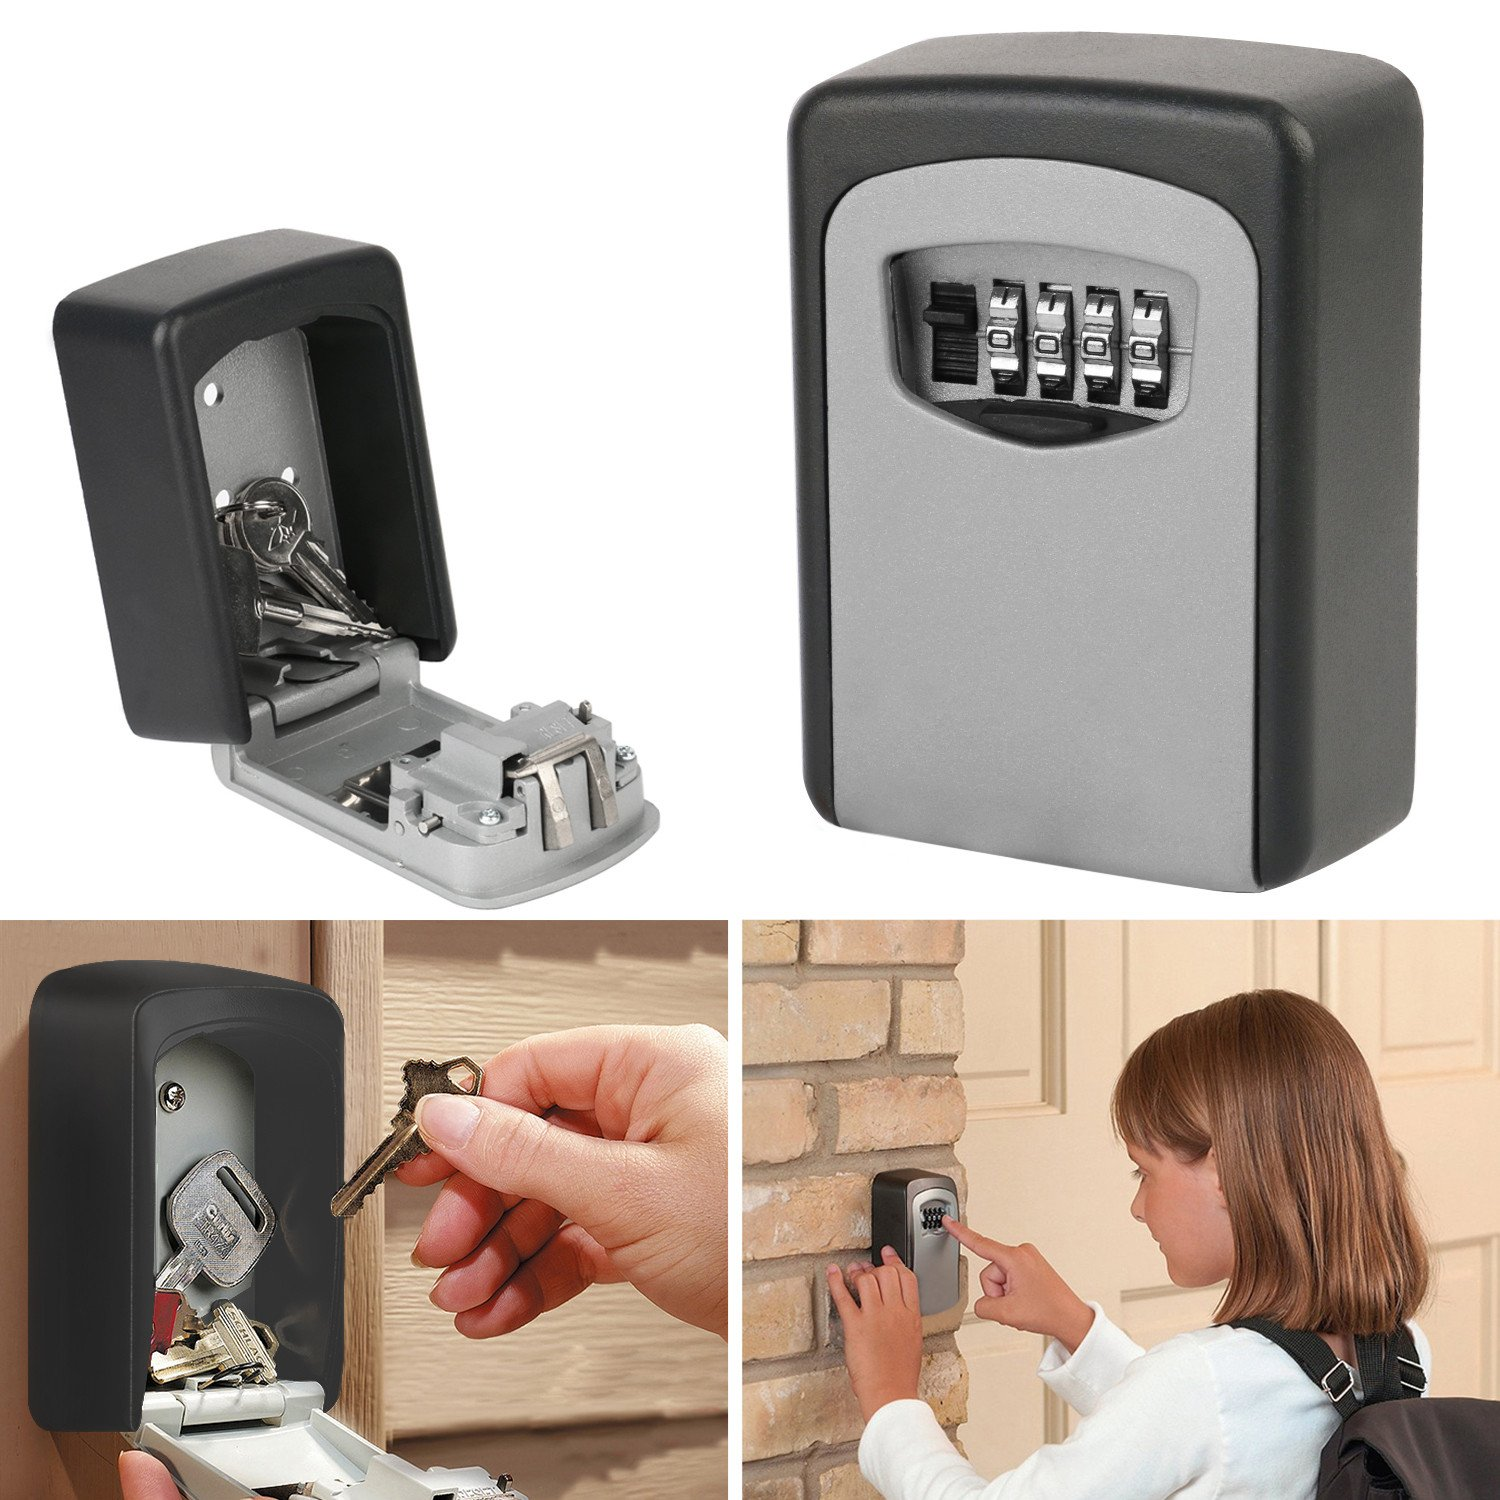 Key Lock Box OKPOW Outdoor Heavy Duty Wall Mounted Combination Key Safe Large Storage Lock Box with Strong 4 Digit Lock for Home Garage School Office Spare Keys